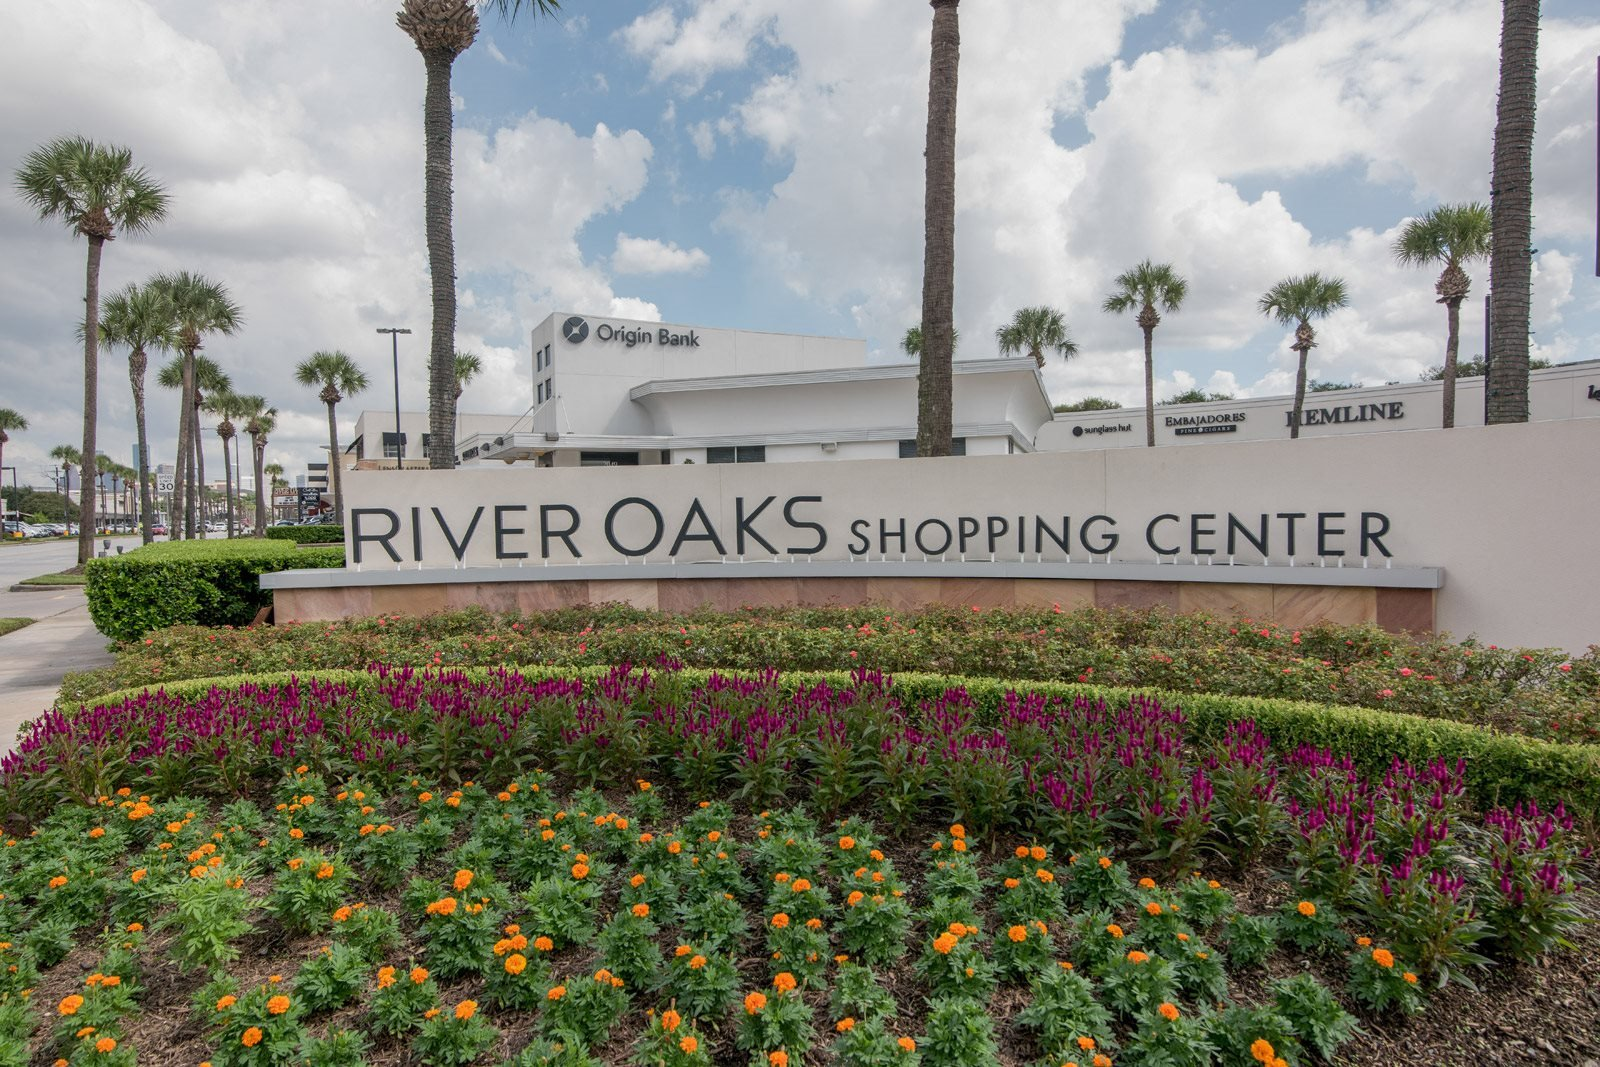 Endless Options for Shopping Exploring and Entertainment at River Oaks Shopping Center near Allen House Apartments, Texas, 77019